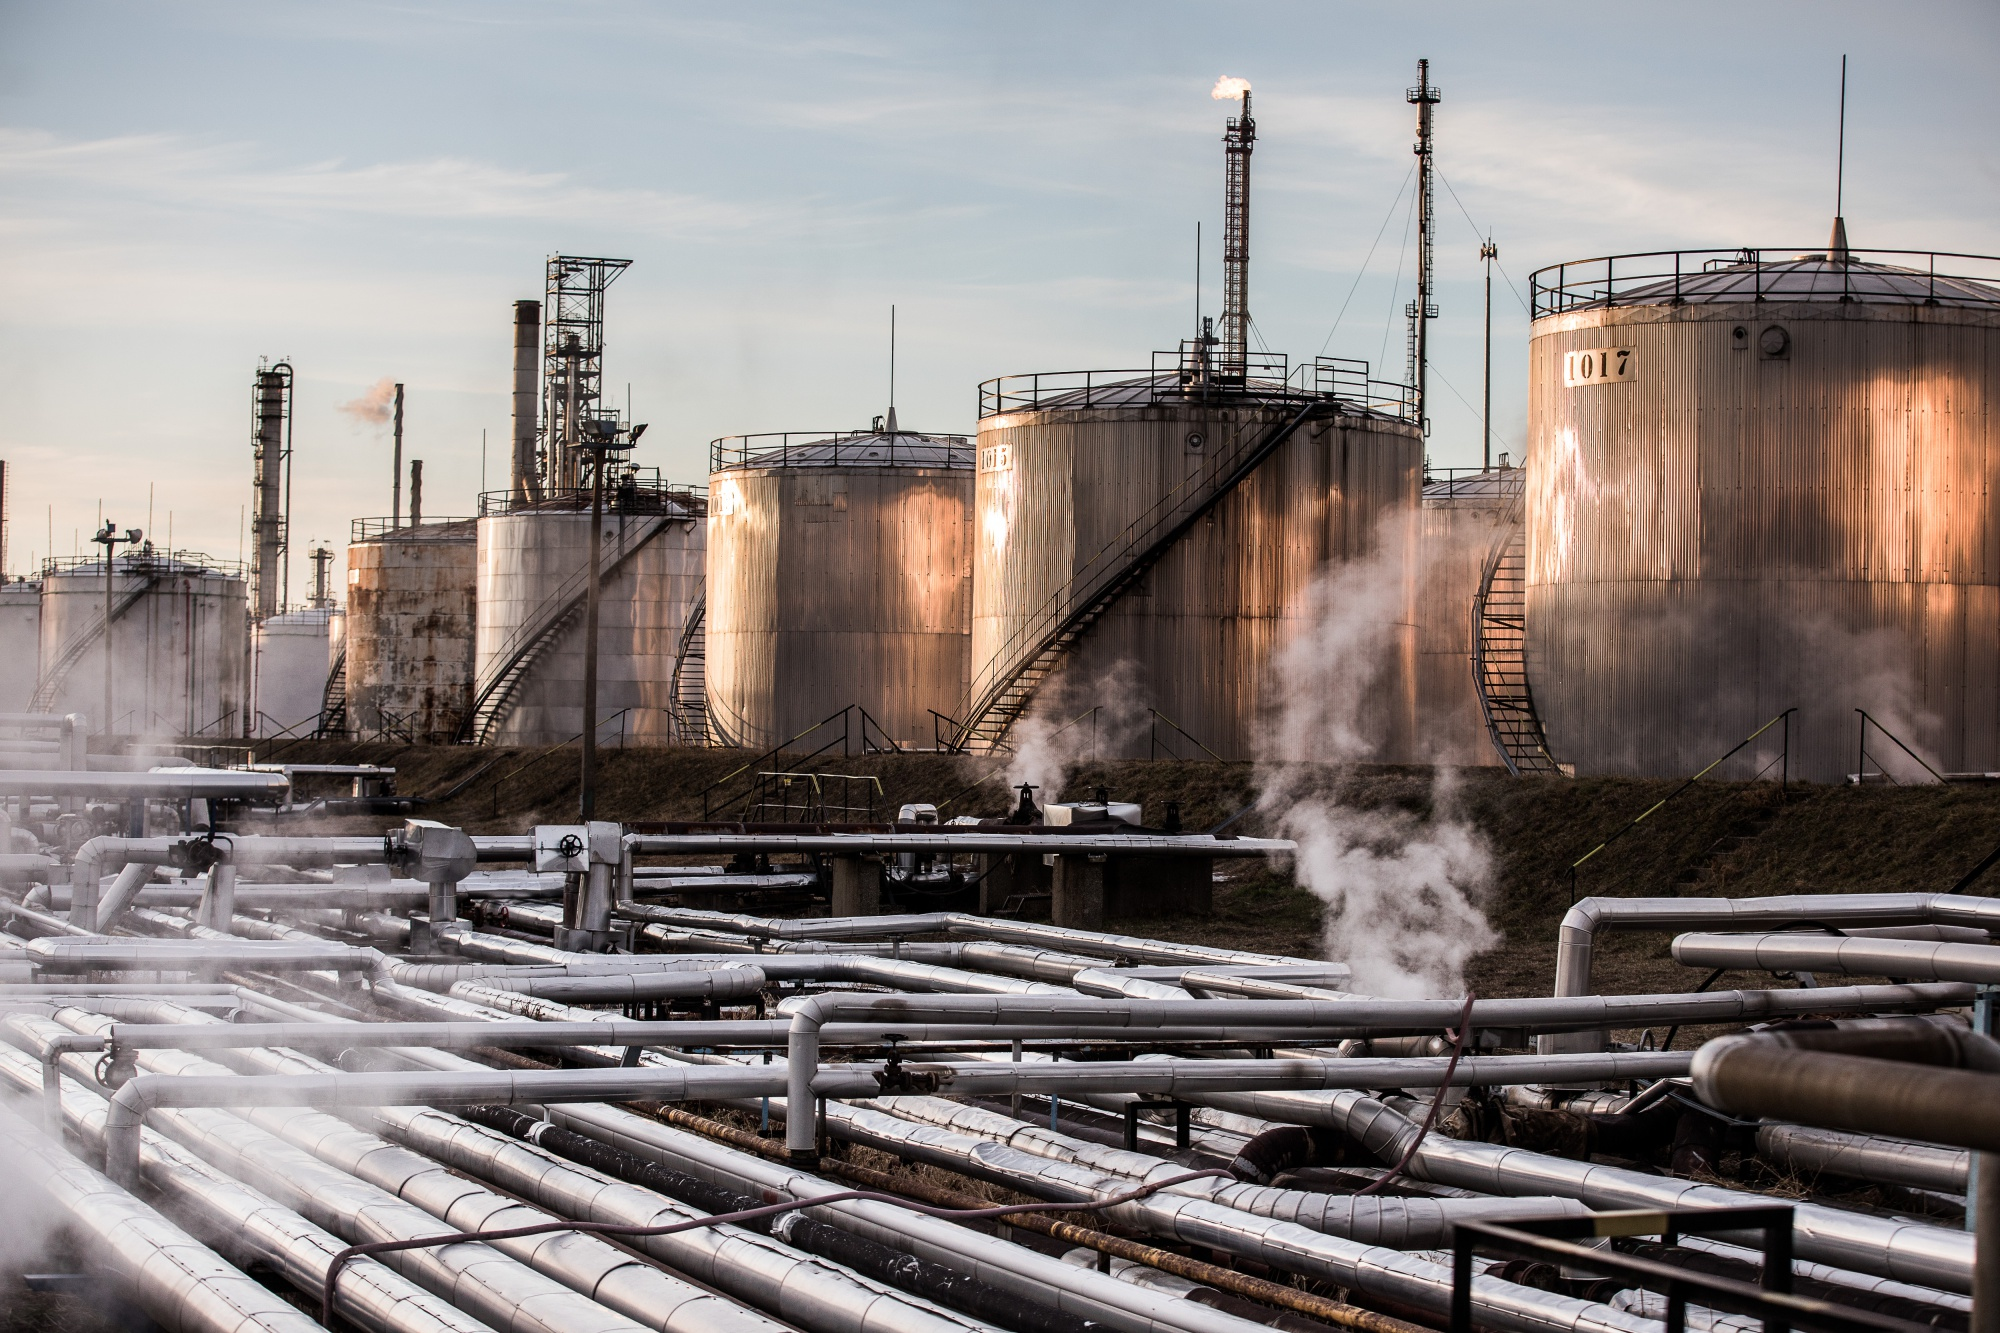 Storage tanks stand in the Duna oil refinery, operated by MOL Hungarian Oil & Gas Plc, in Szazhalombatta, Hungary, on Monday, Feb. 13, 2019. Oil traded near a three-month high as output curbs by OPEC tightened global supply while trade talks between the U.S. and China lifted financial markets. Photographer: Akos Stiller/Bloomberg